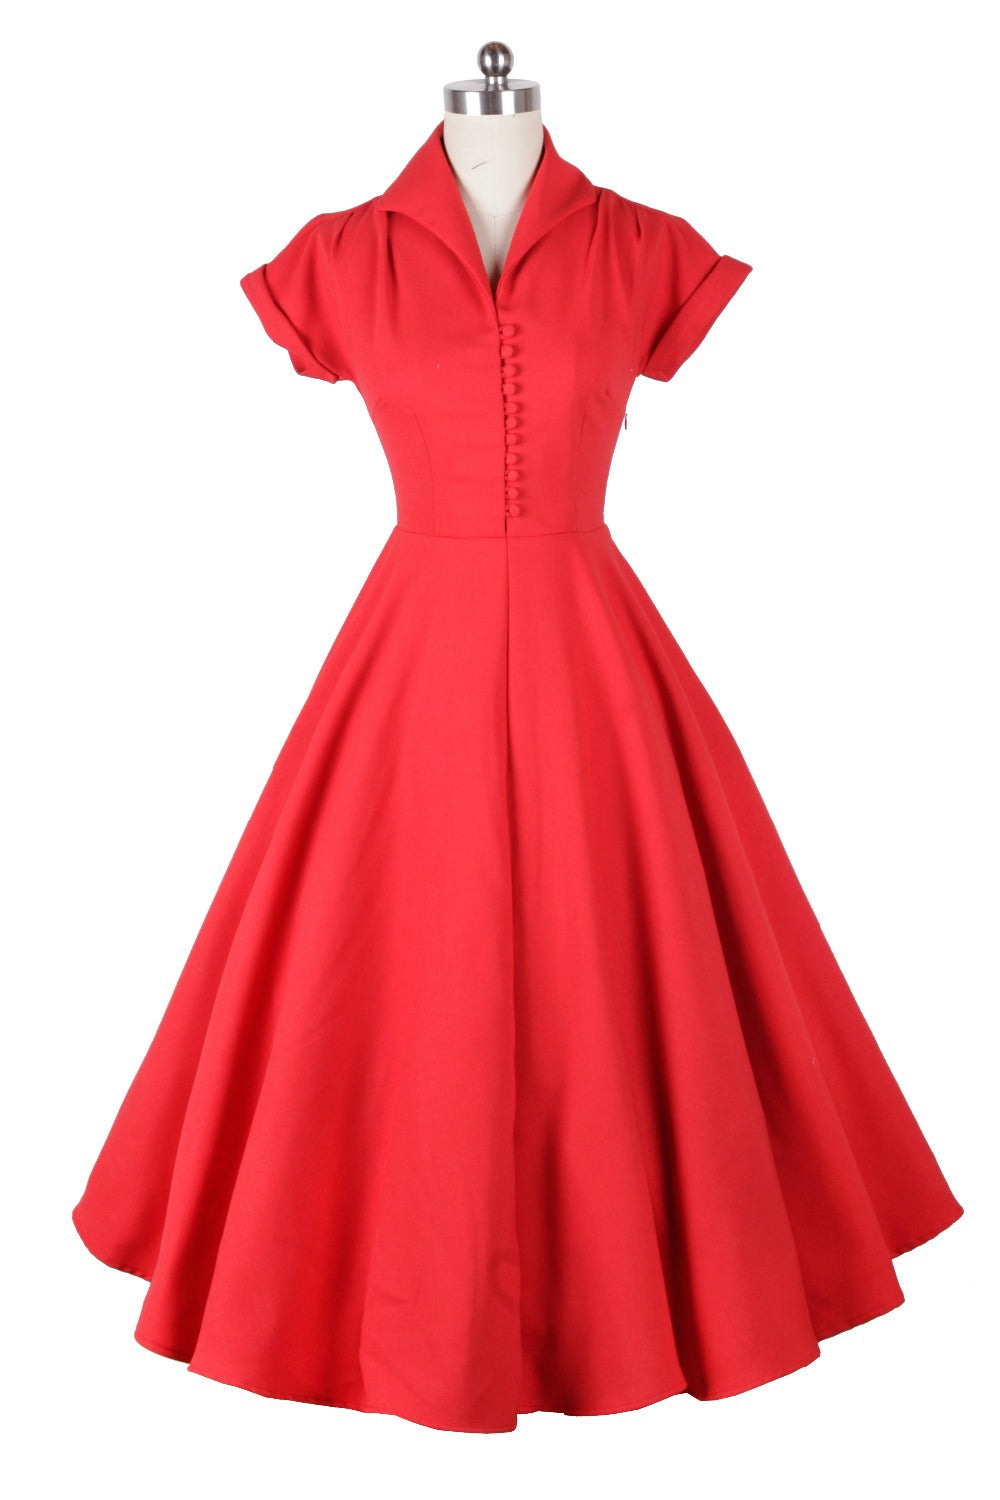 1940s Long Prom High Waist Audrey Hepburn Swing Dress